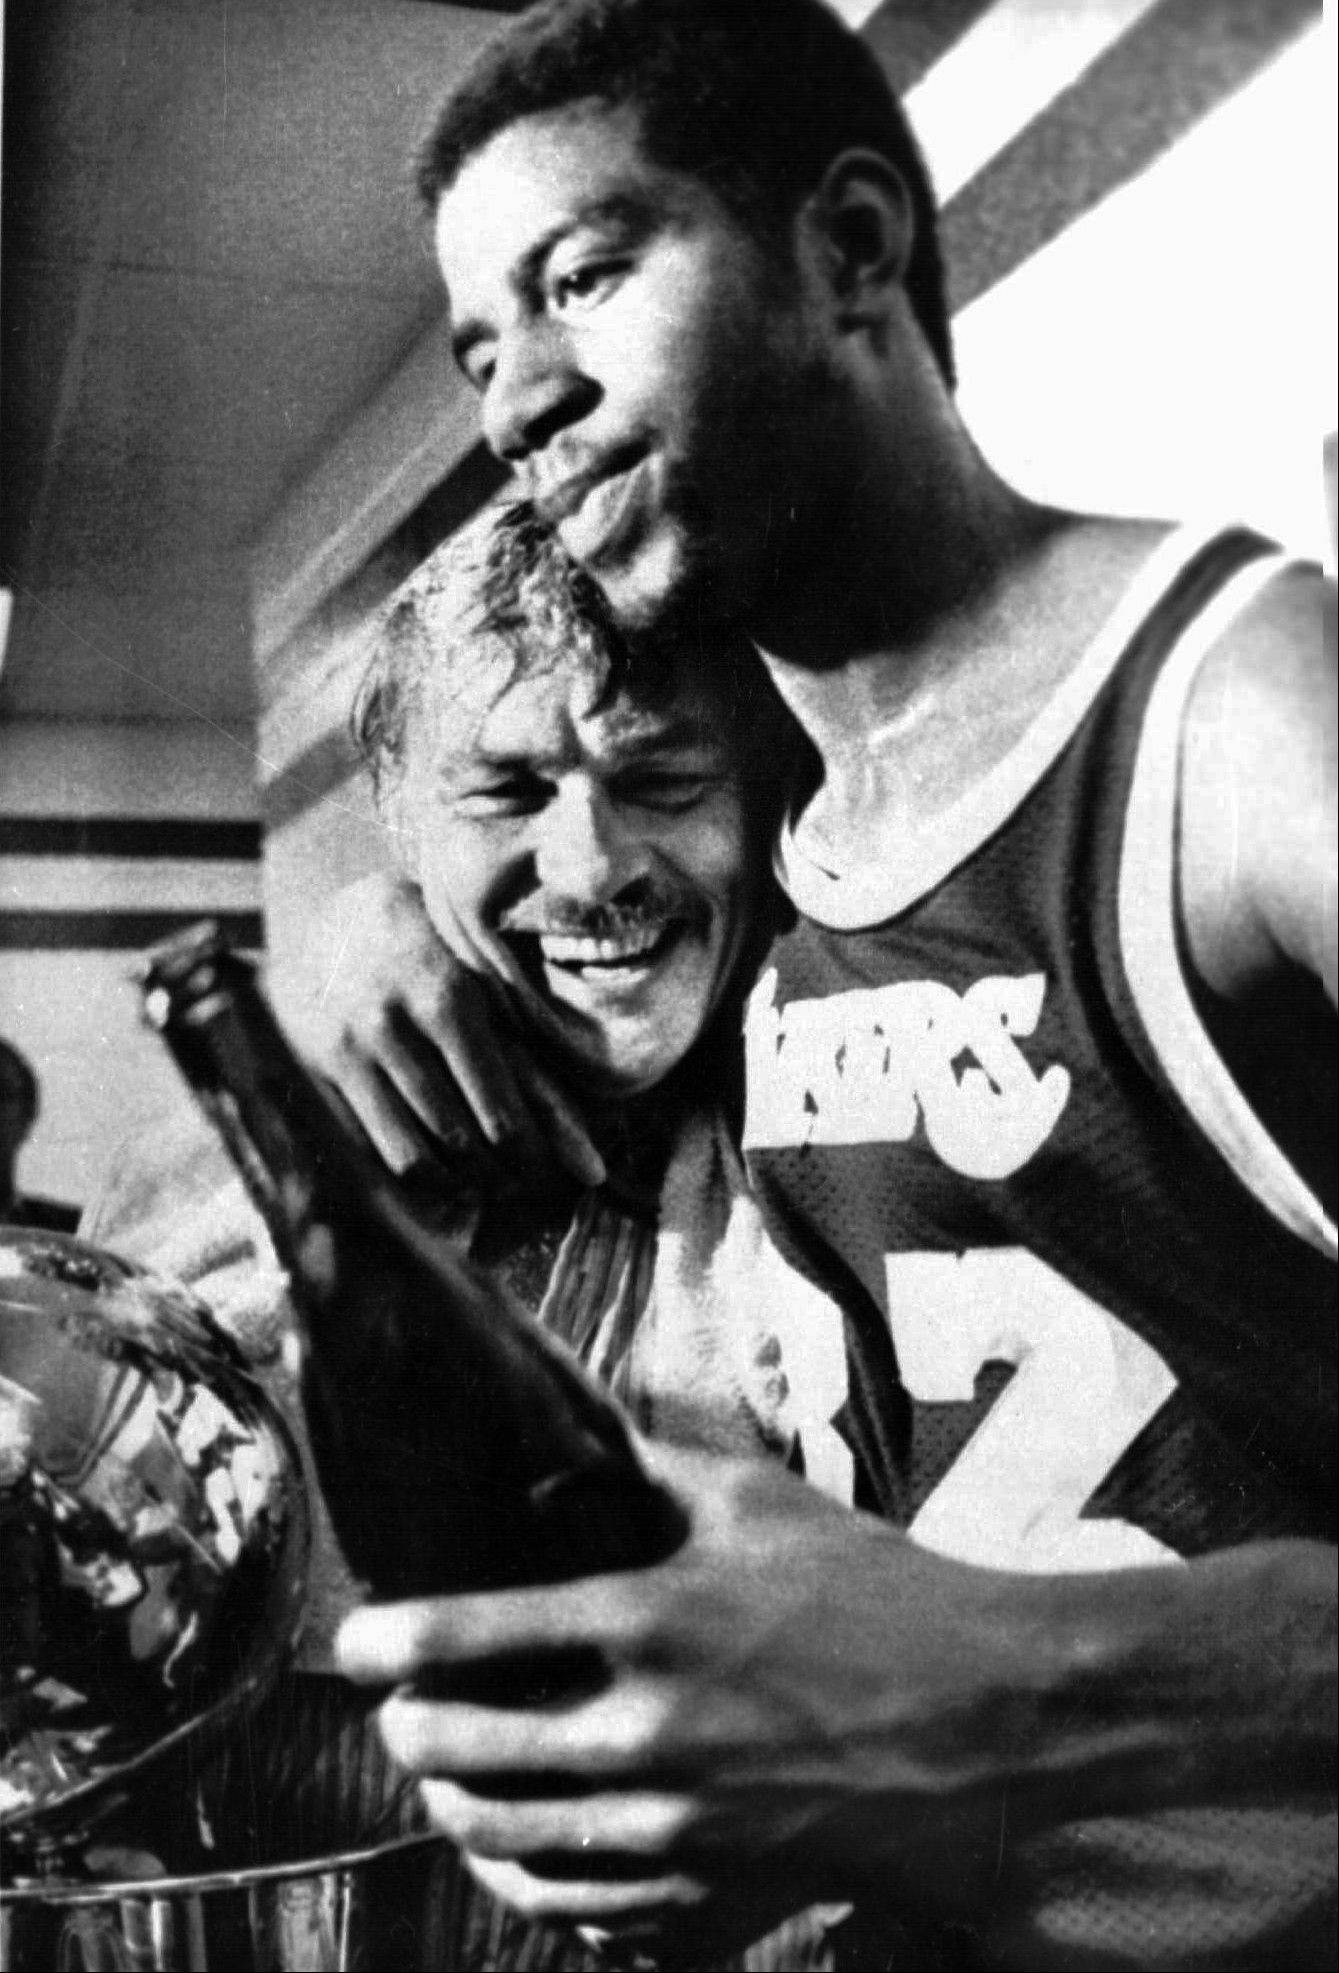 In this May 17, 1980, file photo, Earvin �Magic� Johnson hugs team owner Jerry Buss in the locker room after the Los Angeles Lakers won the 1980 NBA championship against the Philadelphia 76ers in Philadelphia. Buss, the Lakers� owner who shepherded the NBA franchise to 10 championships, died Monday. He was 80.